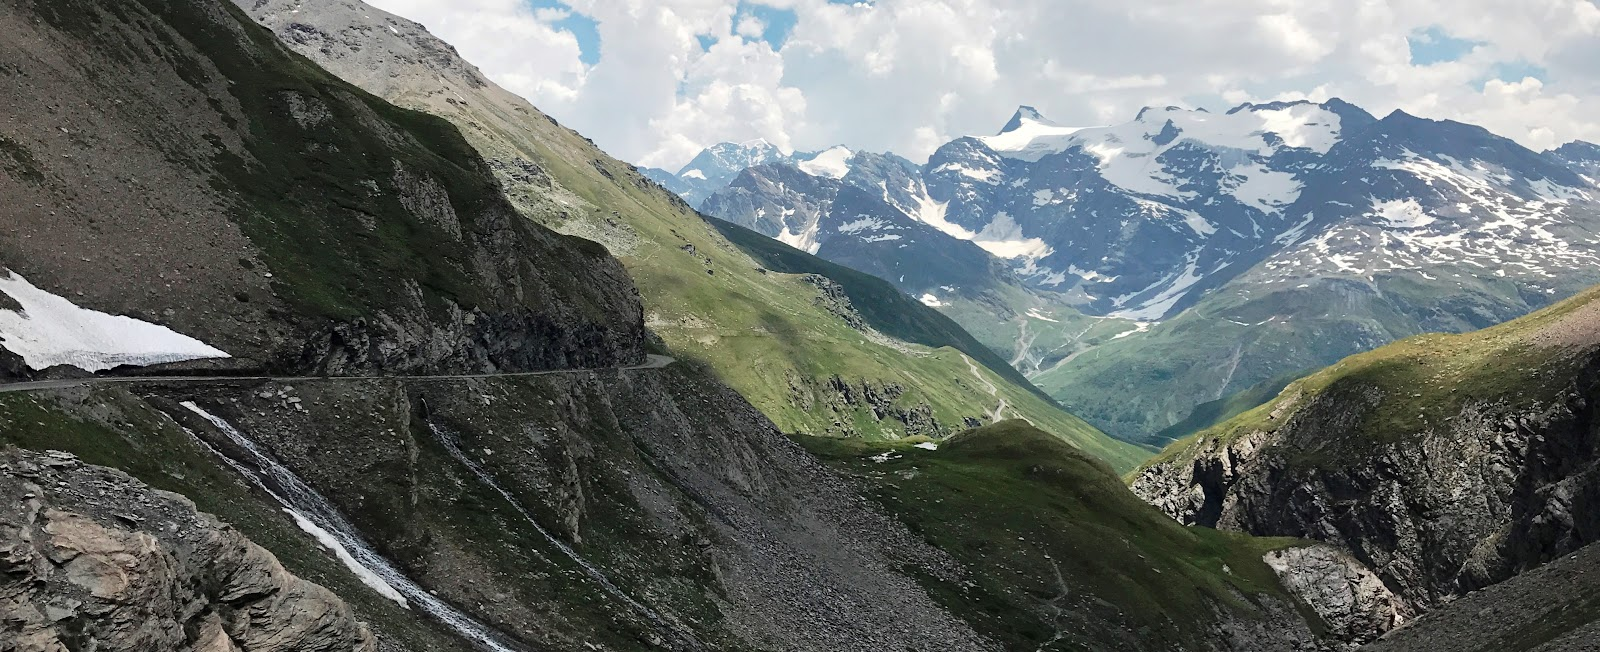 Climbing Col de L'Iseran from Bonneval-sur-Arc by bike; narrow road and cliff